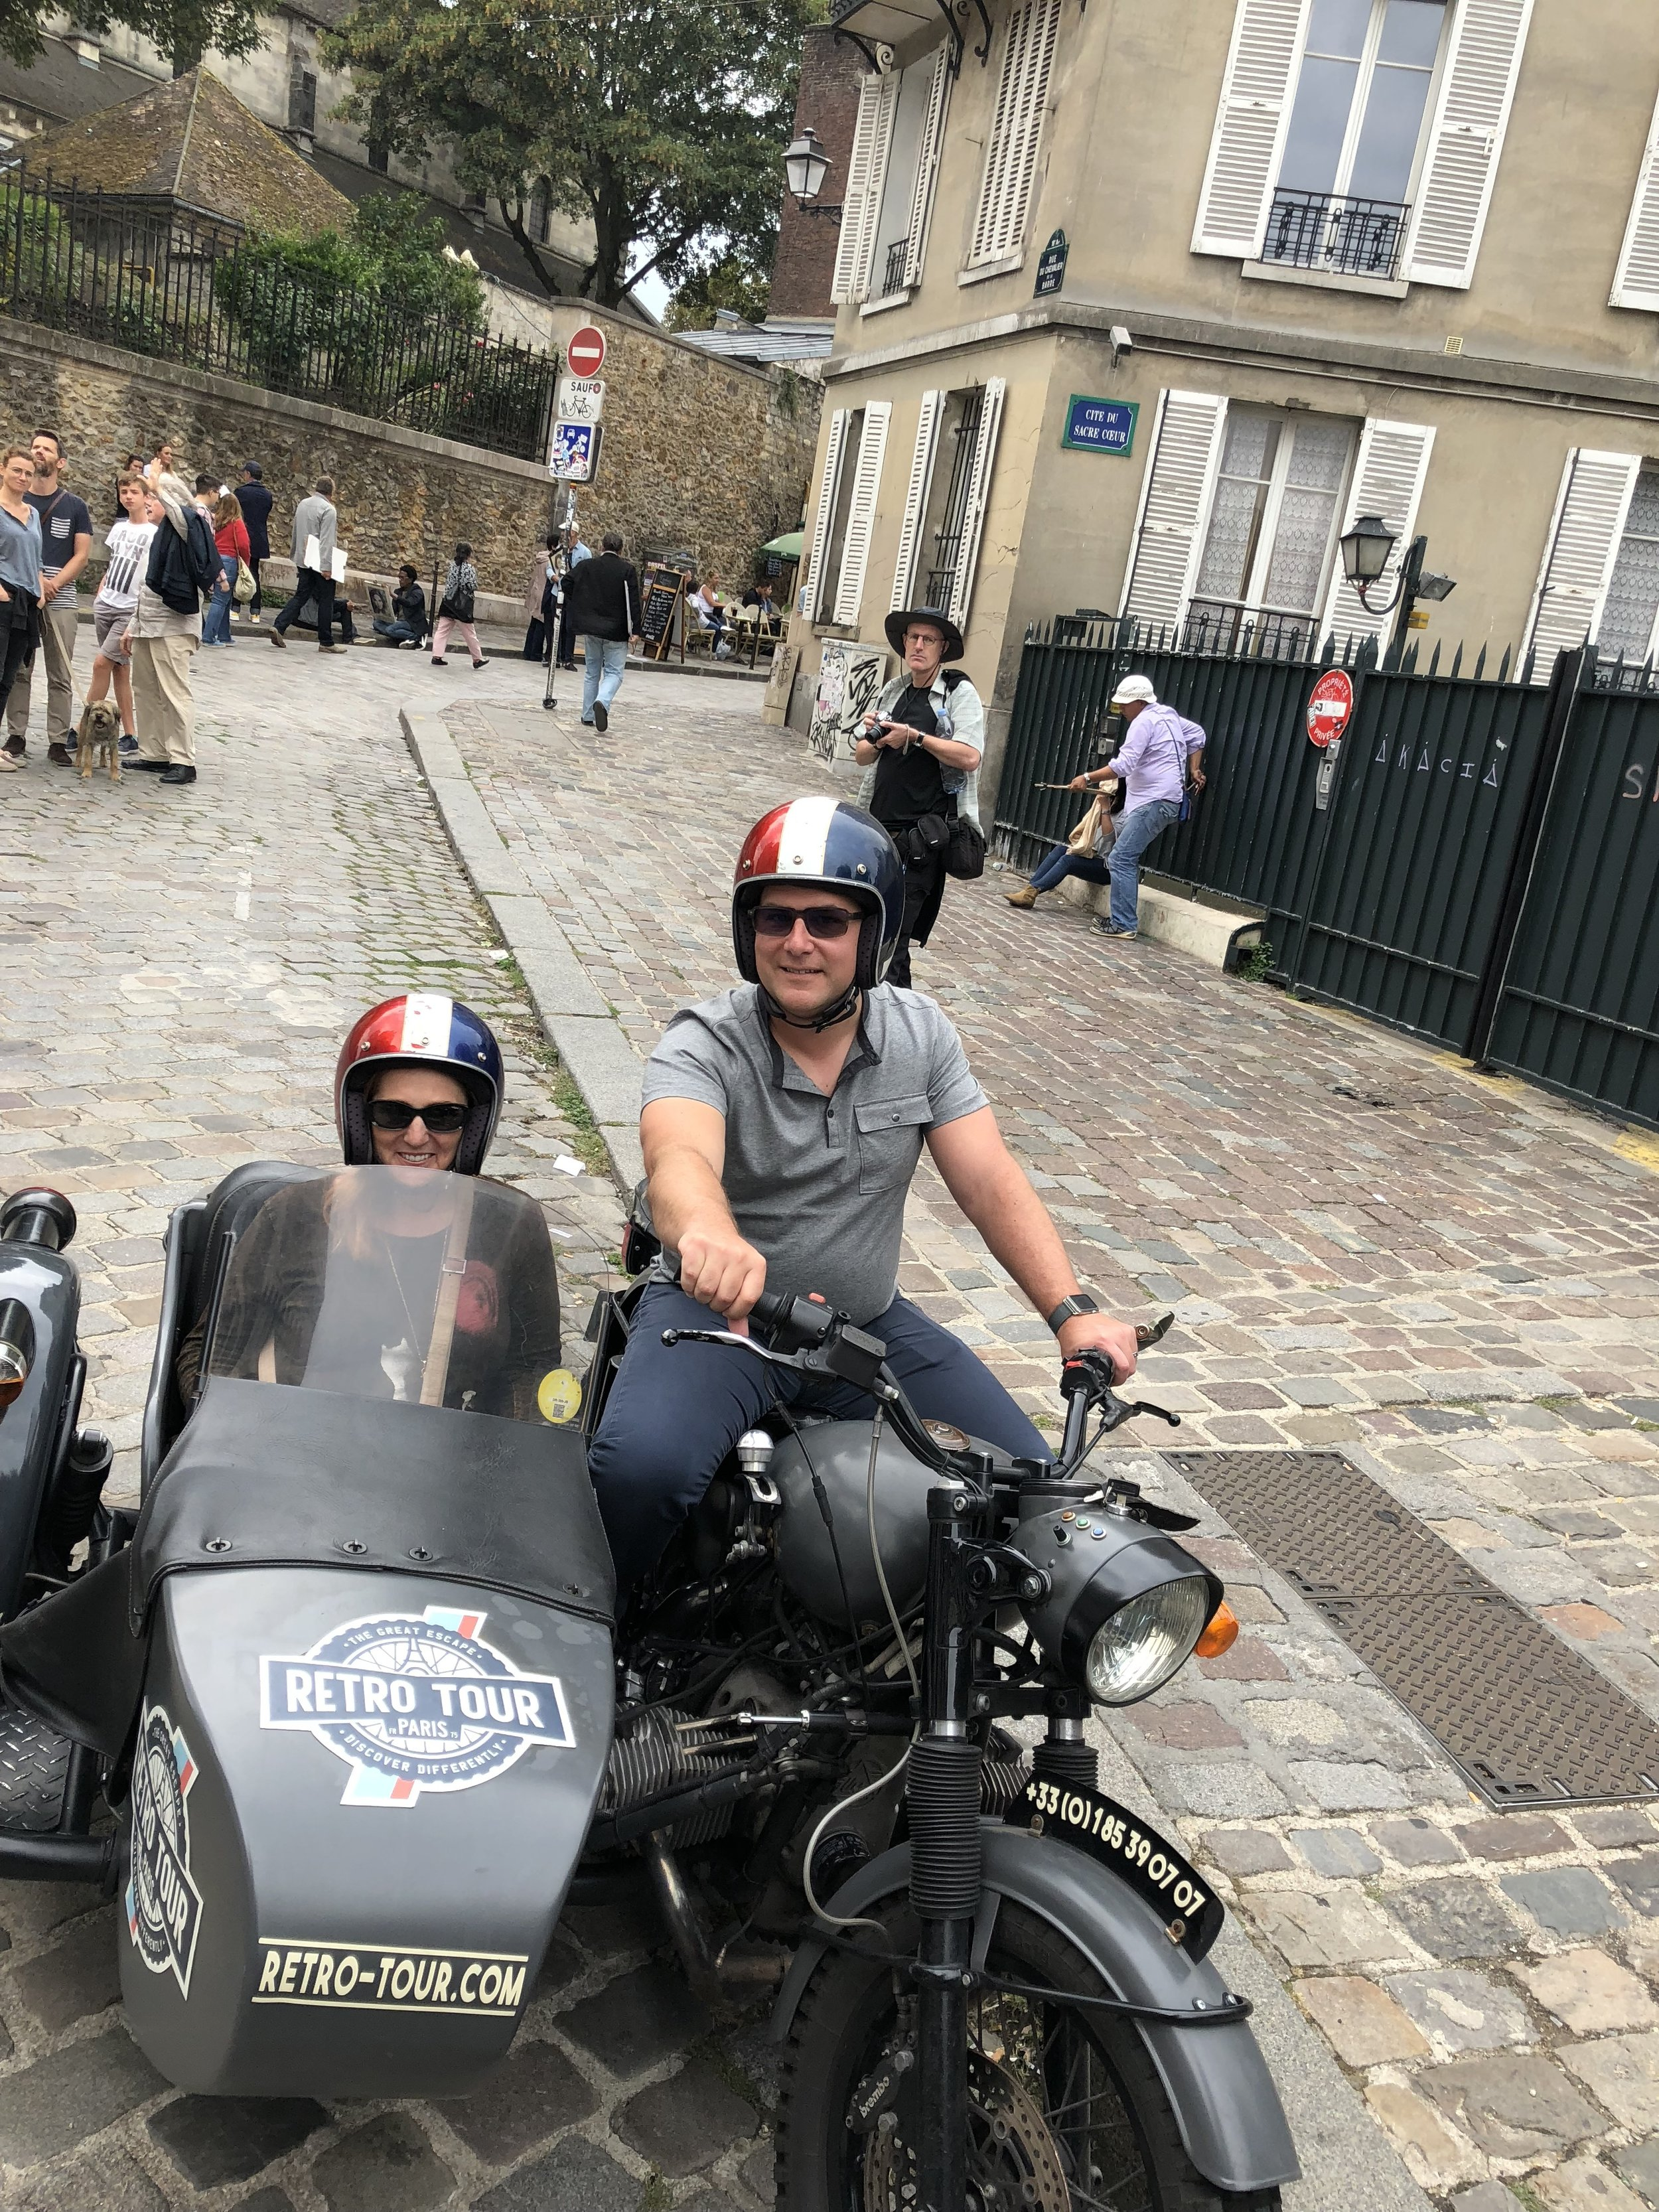 The best way to see Paris is from a motorbike and sidecar